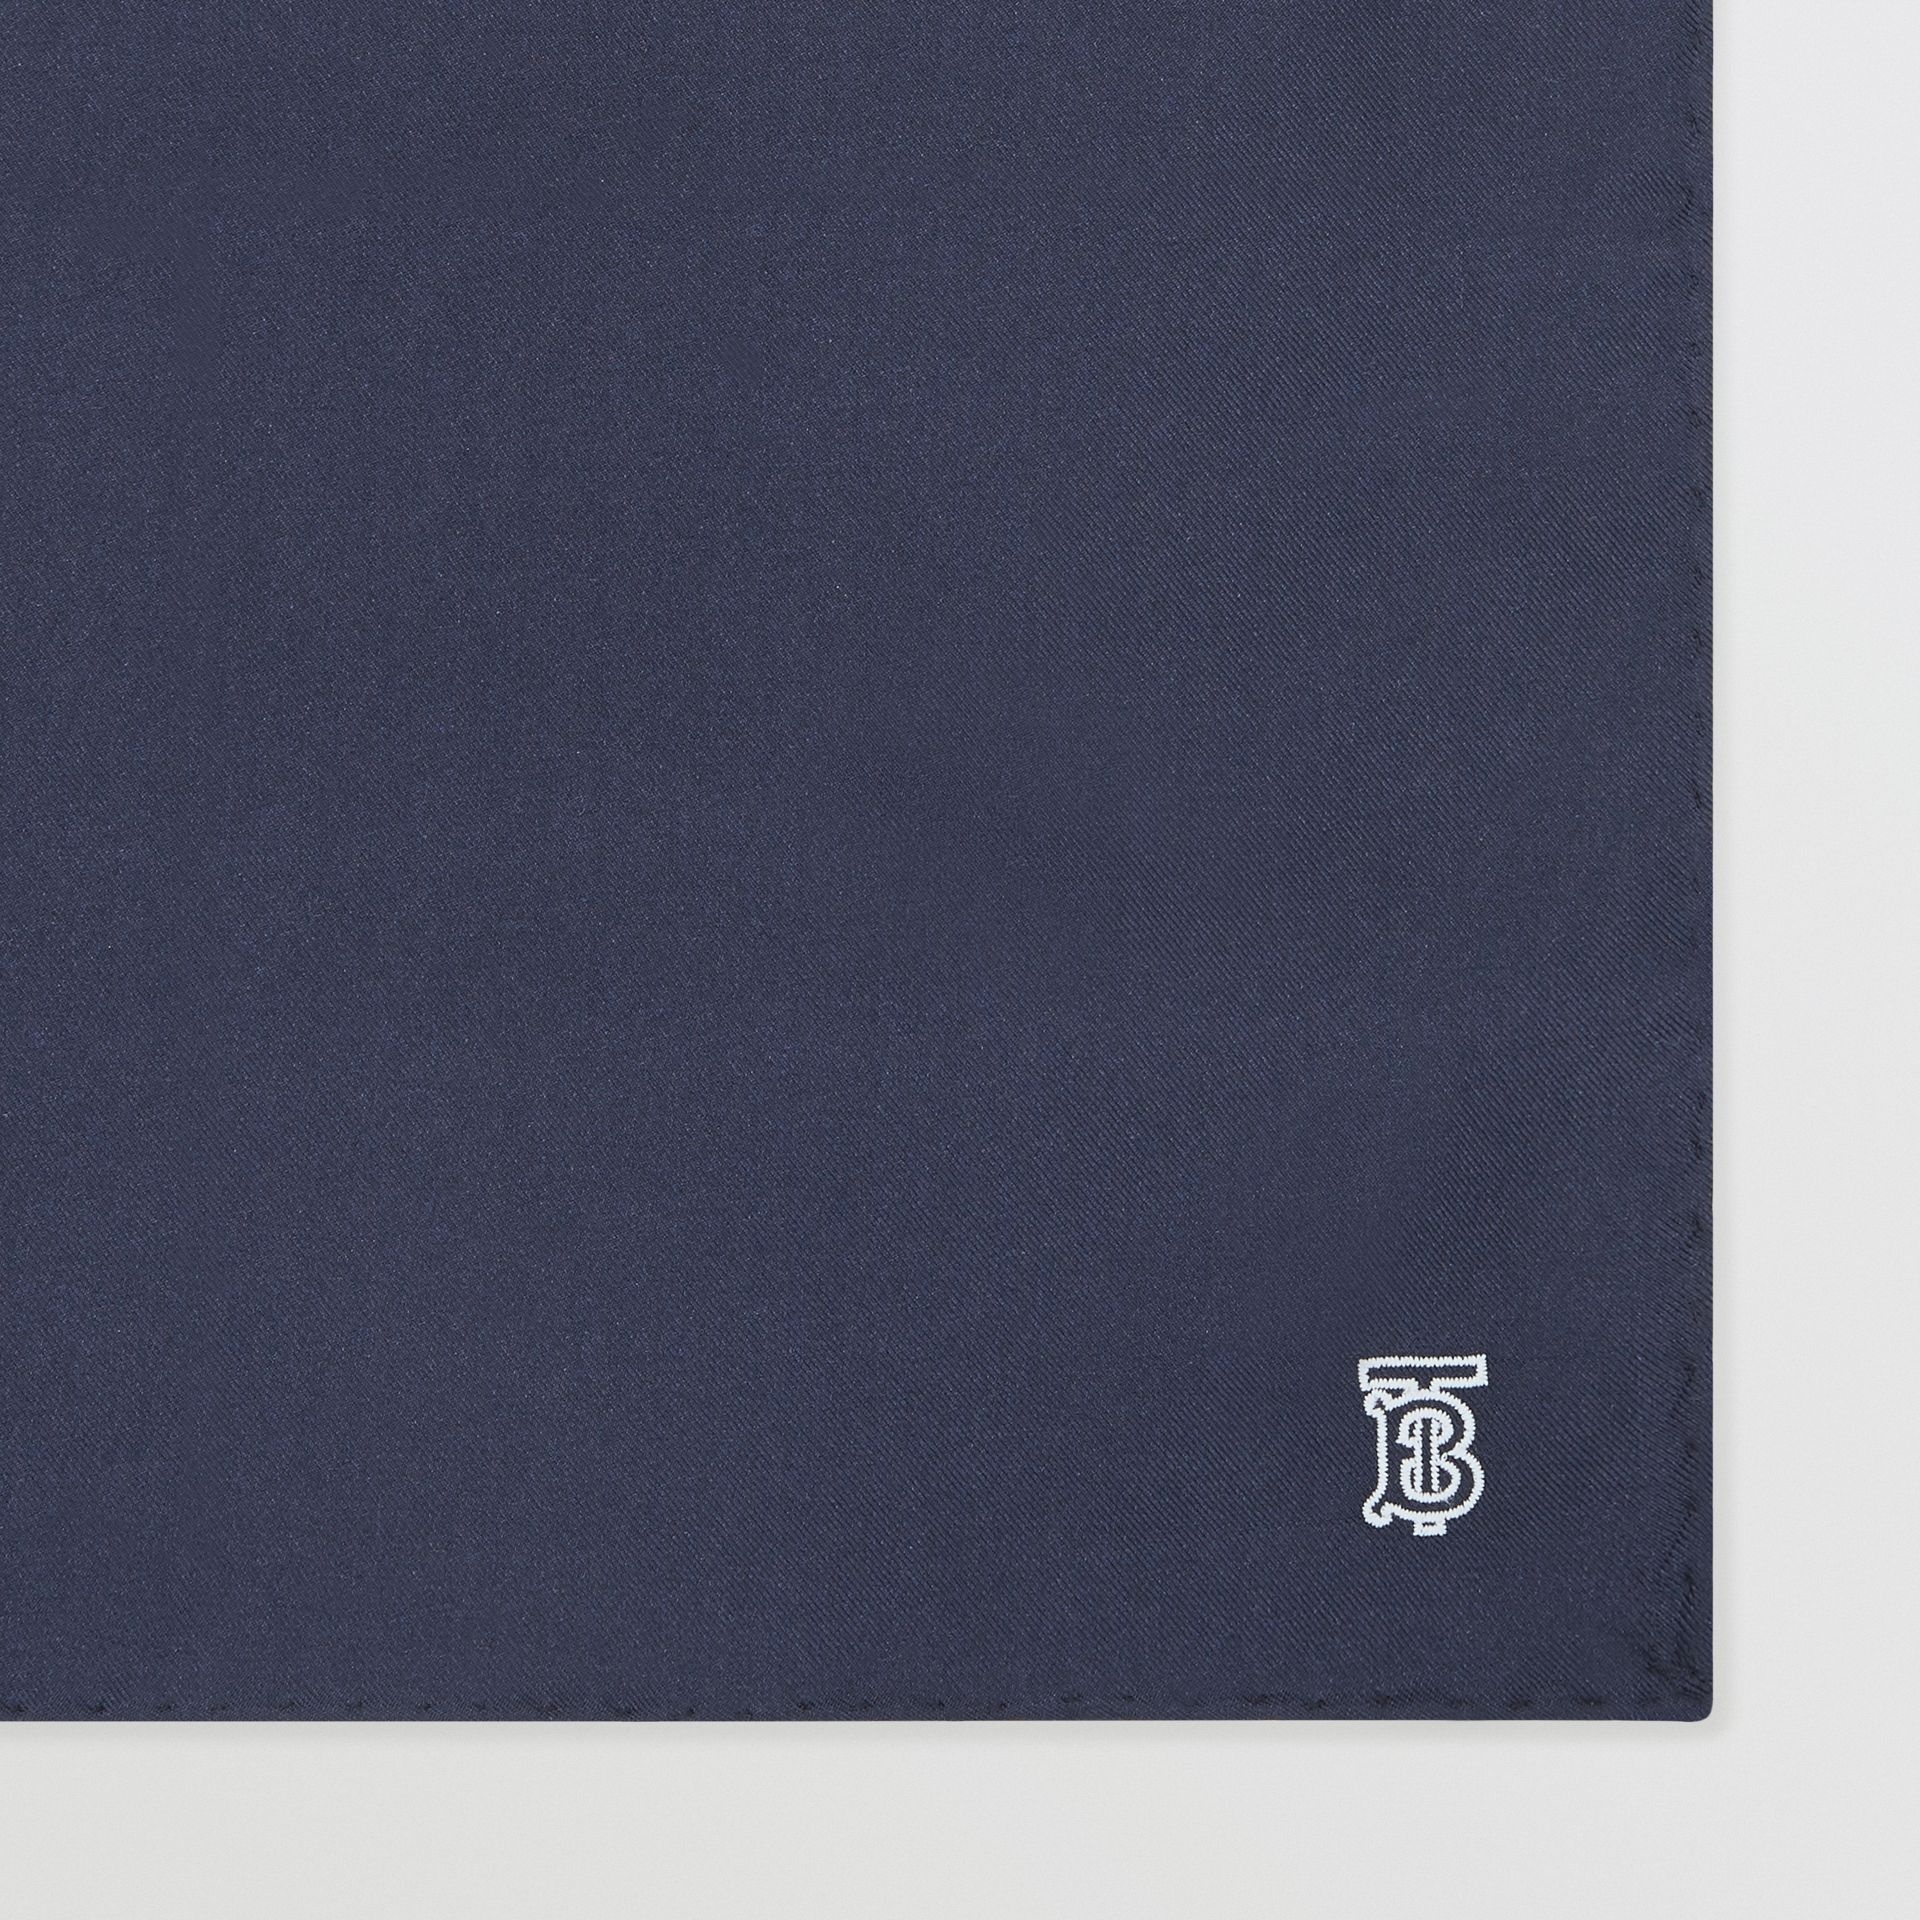 Monogram Motif Silk Pocket Square in Navy Blue - Men | Burberry - gallery image 1